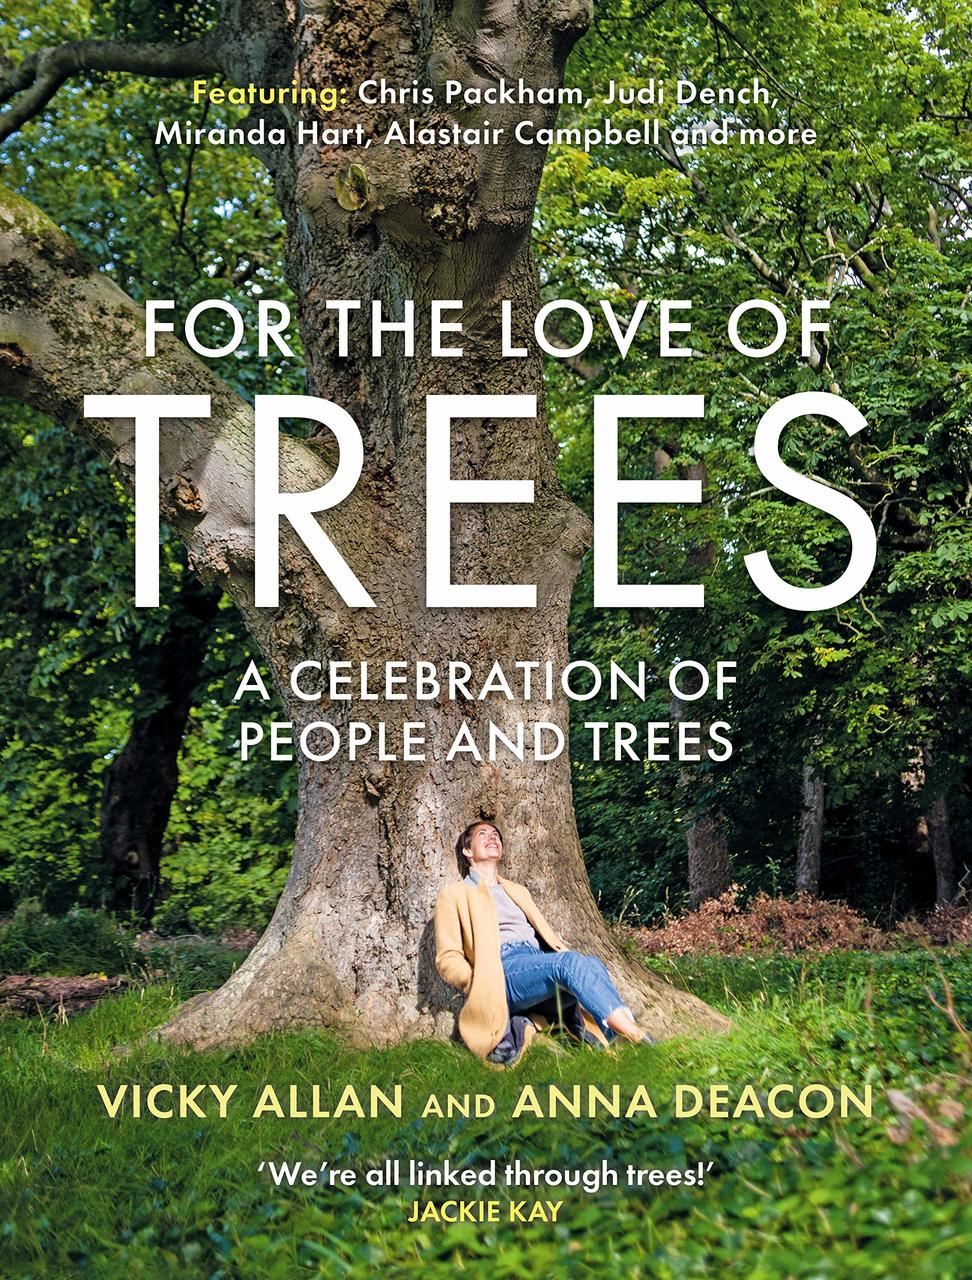 For the love of trees cover photo